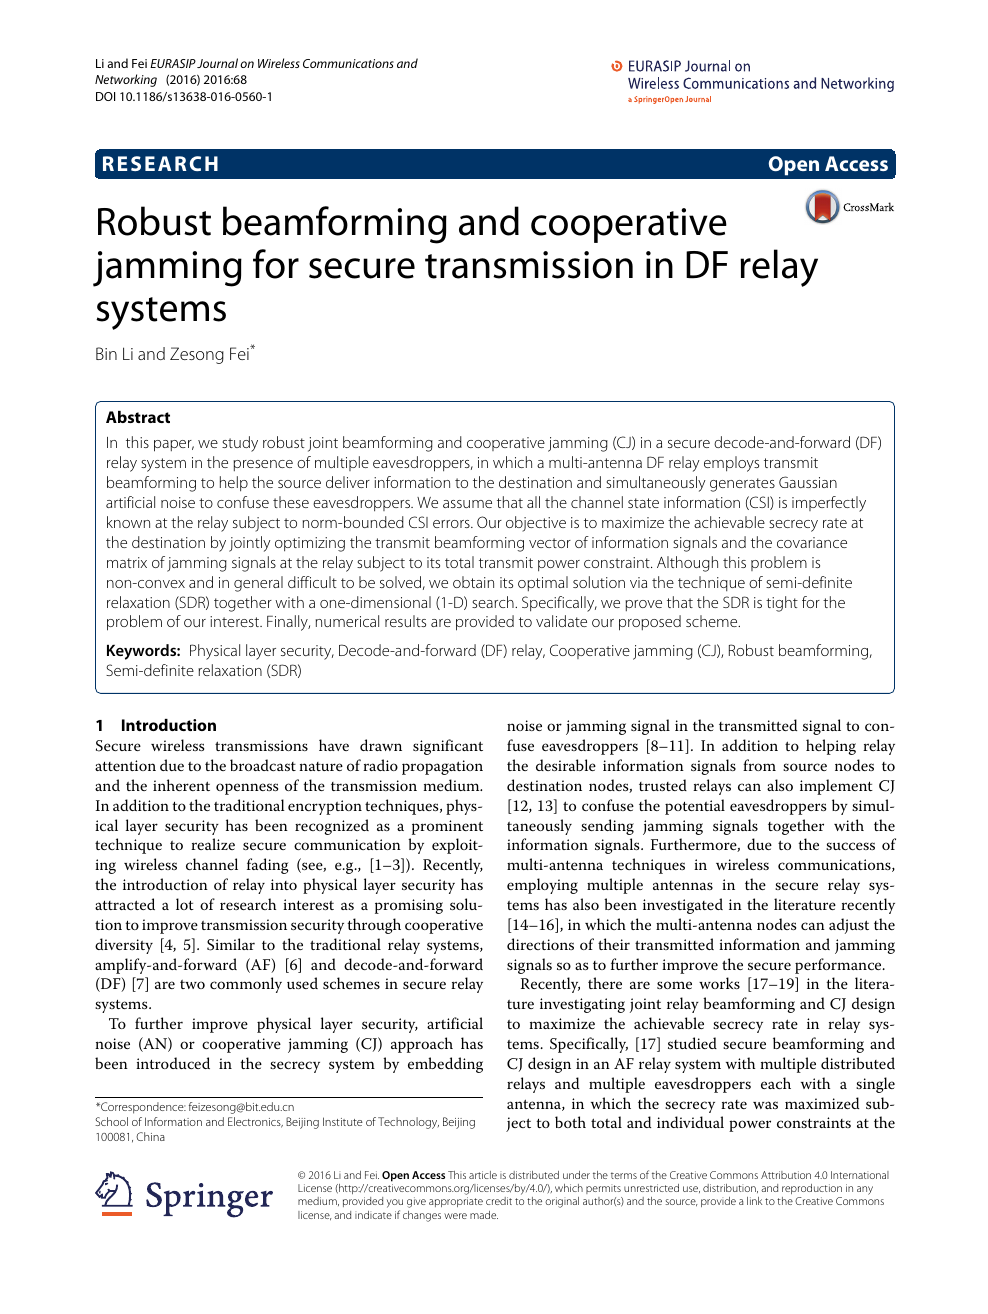 Robust beamforming and cooperative jamming for secure